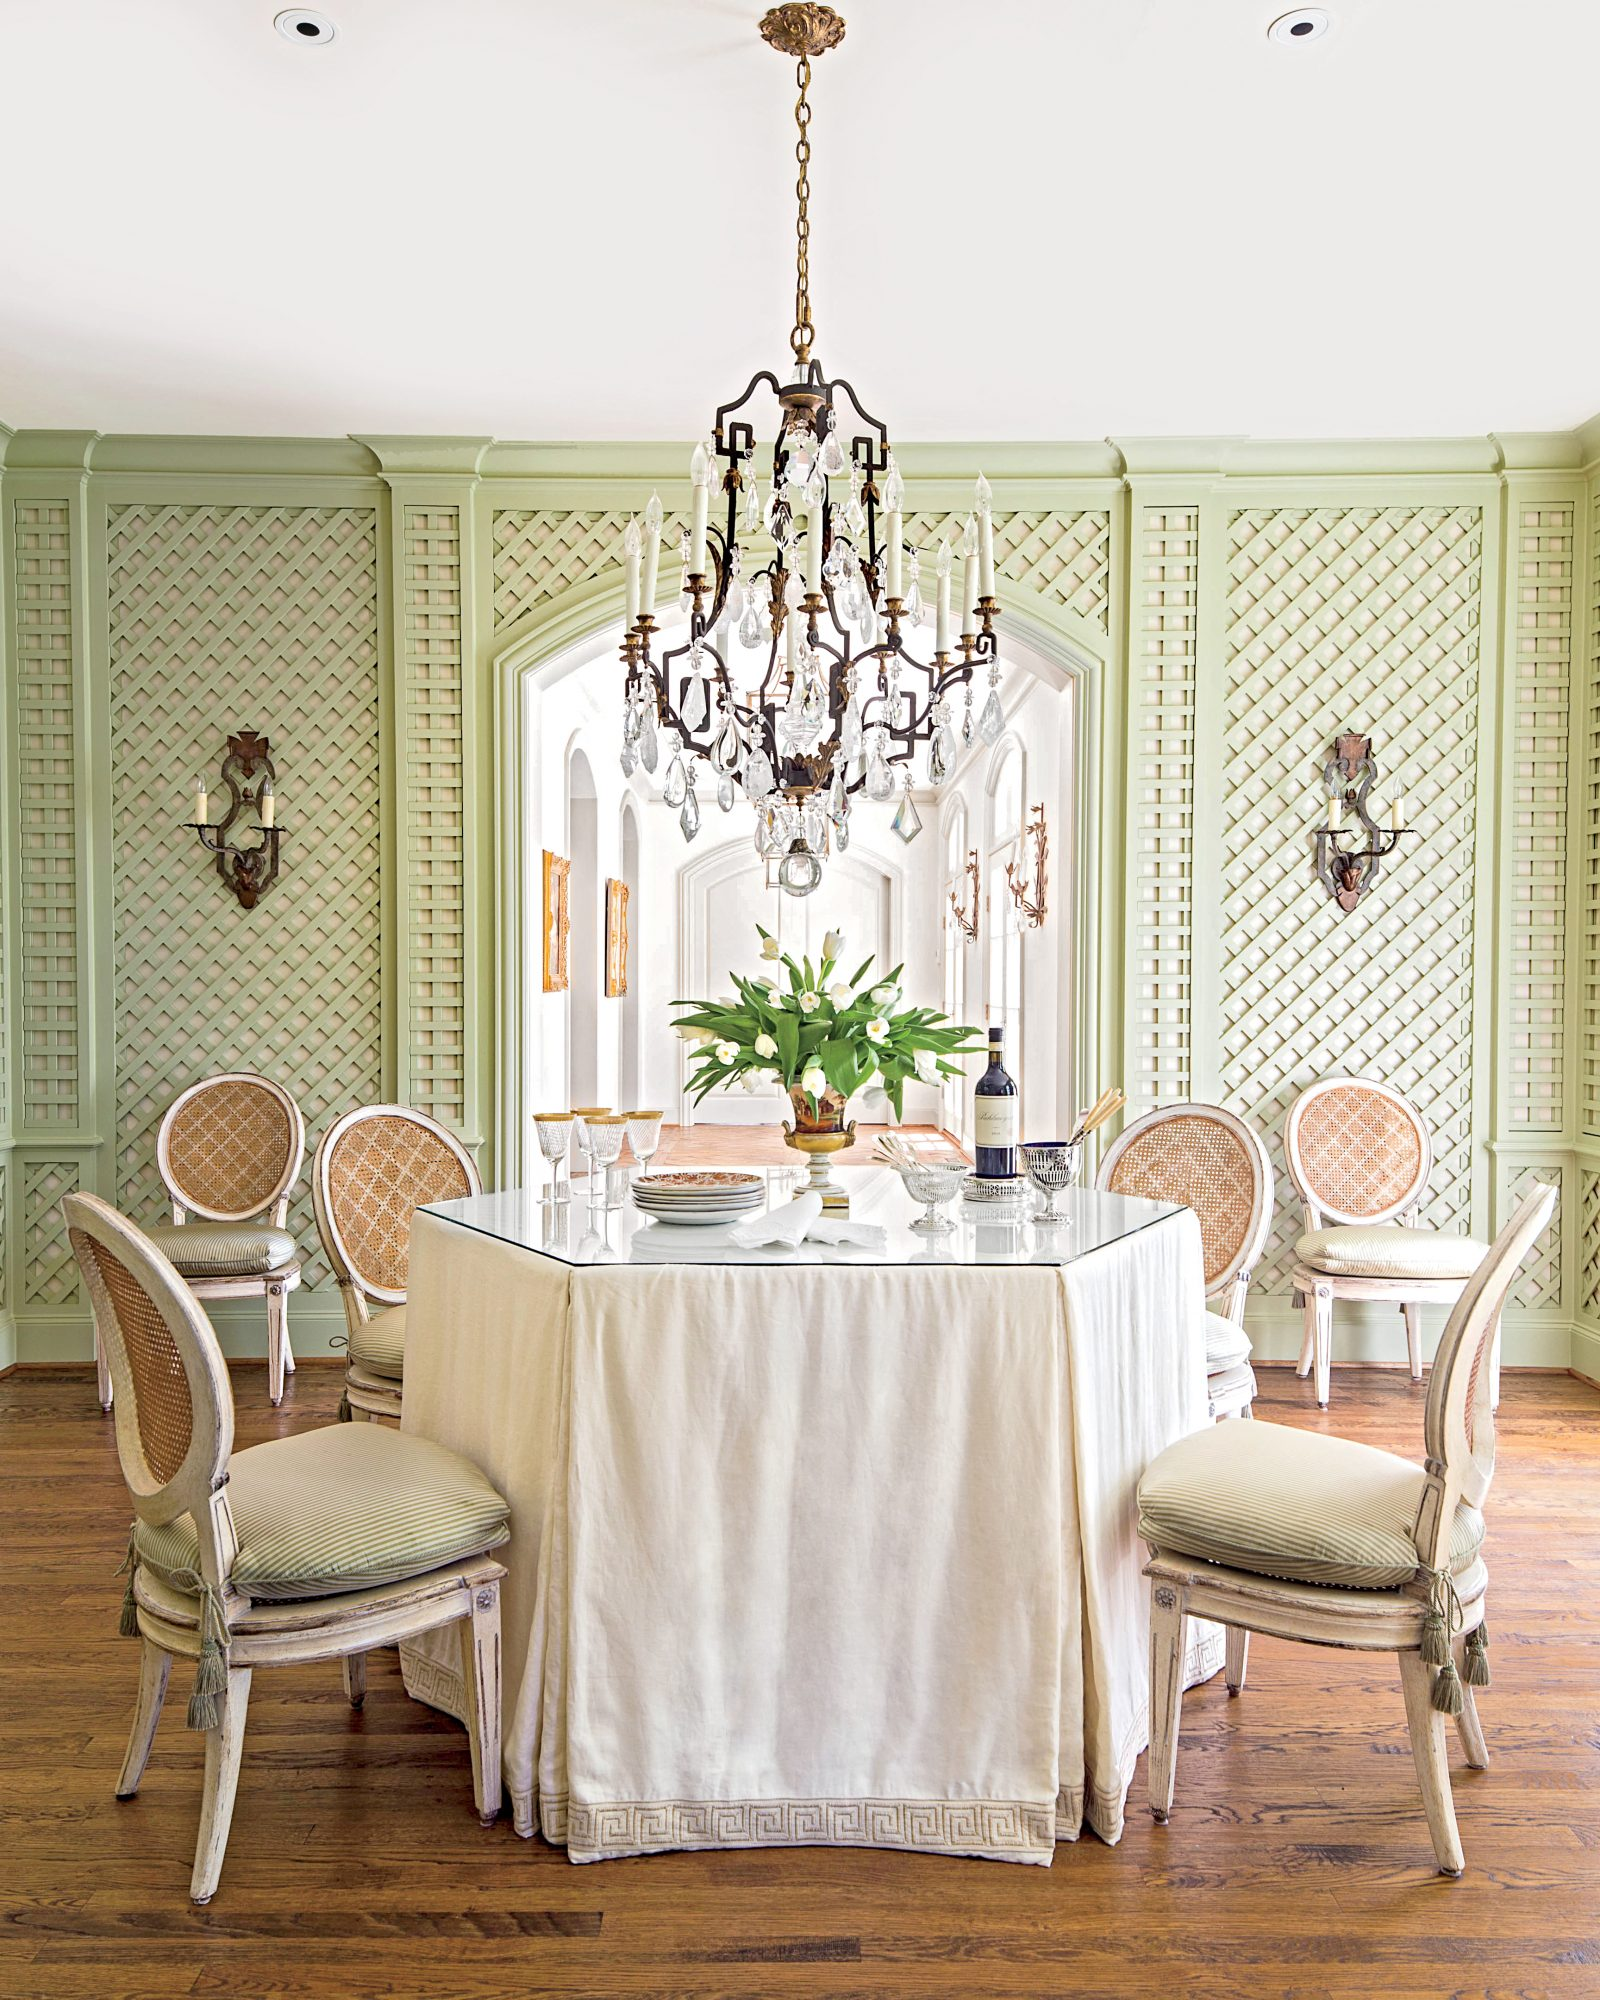 Dining Room Table with Skirt